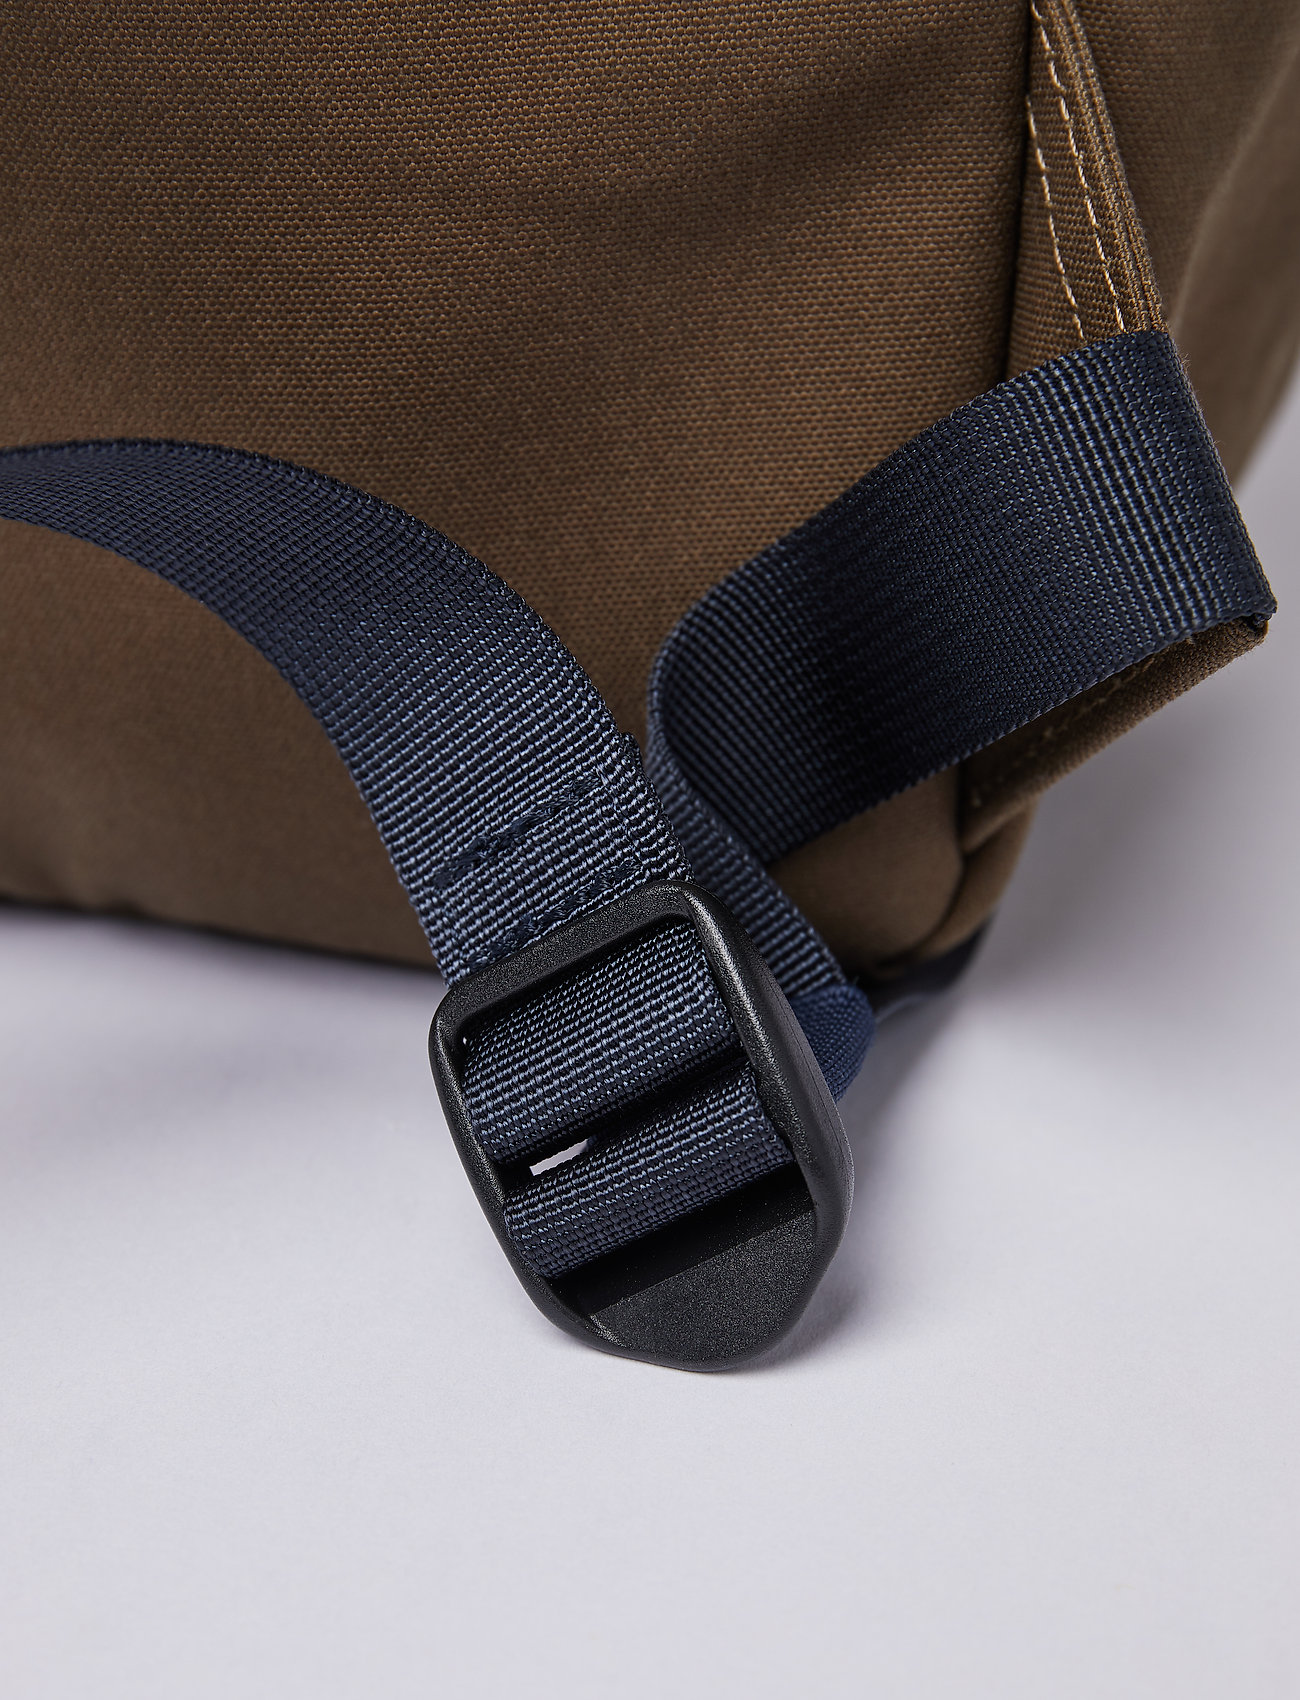 SANDQVIST - KNUT - sacs a dos - olive with navy webbing - 8